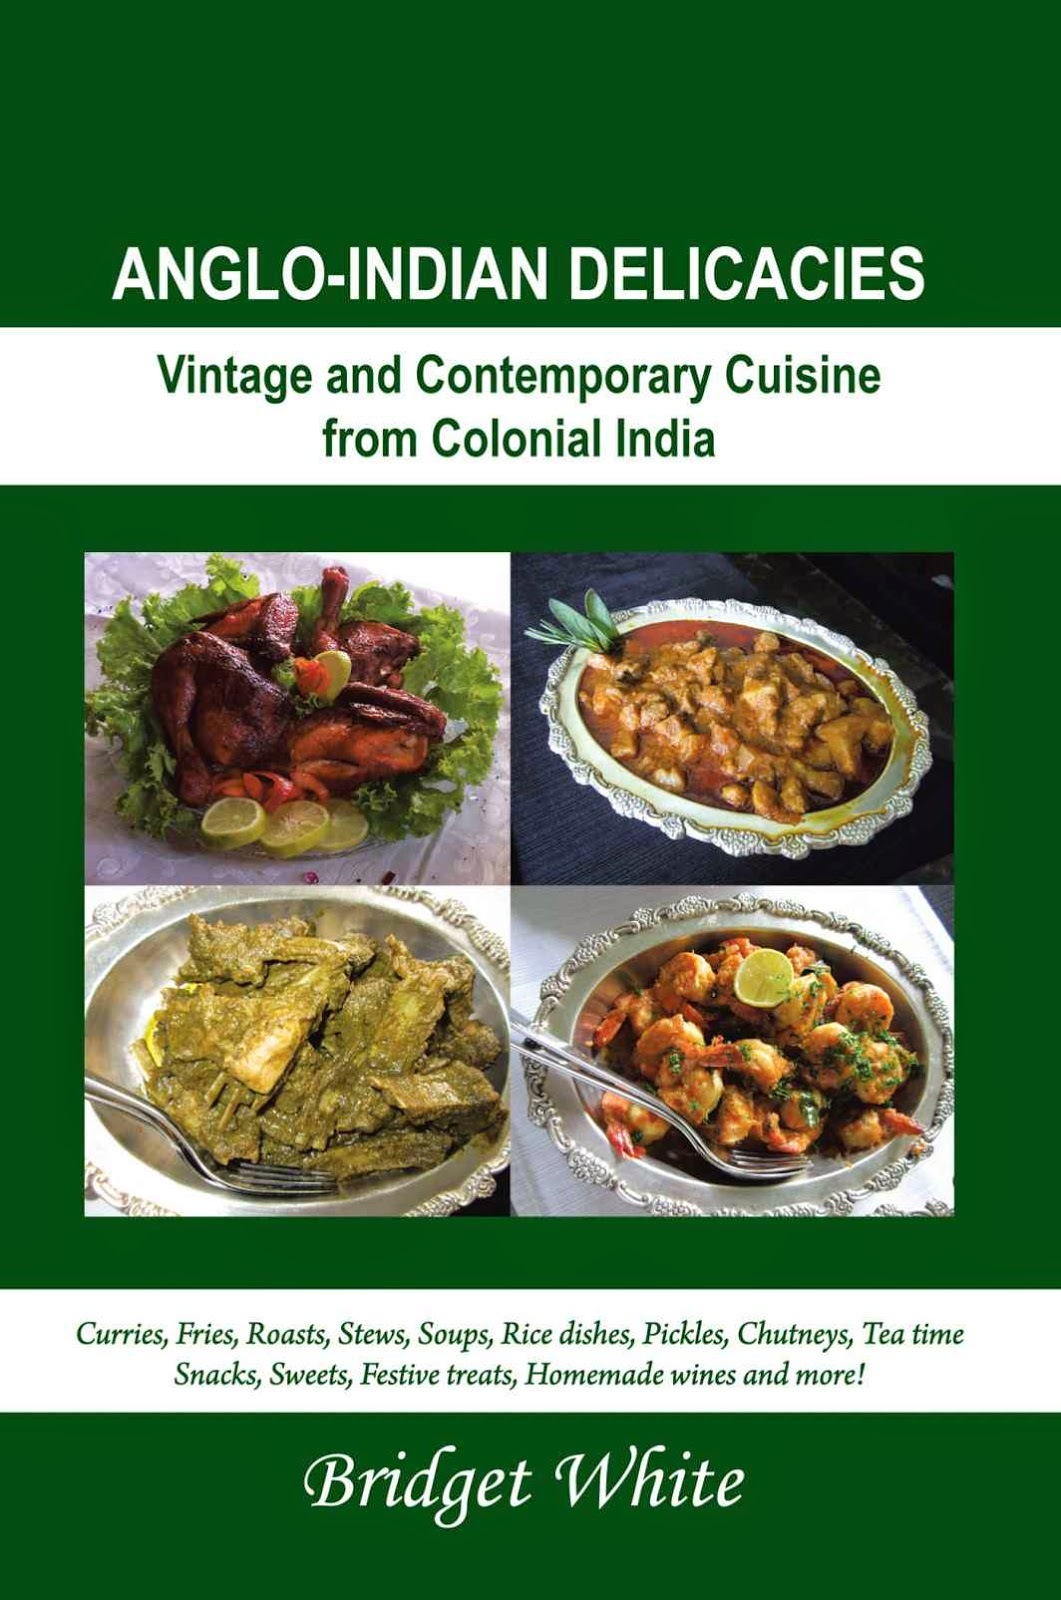 ANGLO-INDIAN DELICACIES - BRIDGET WHITE